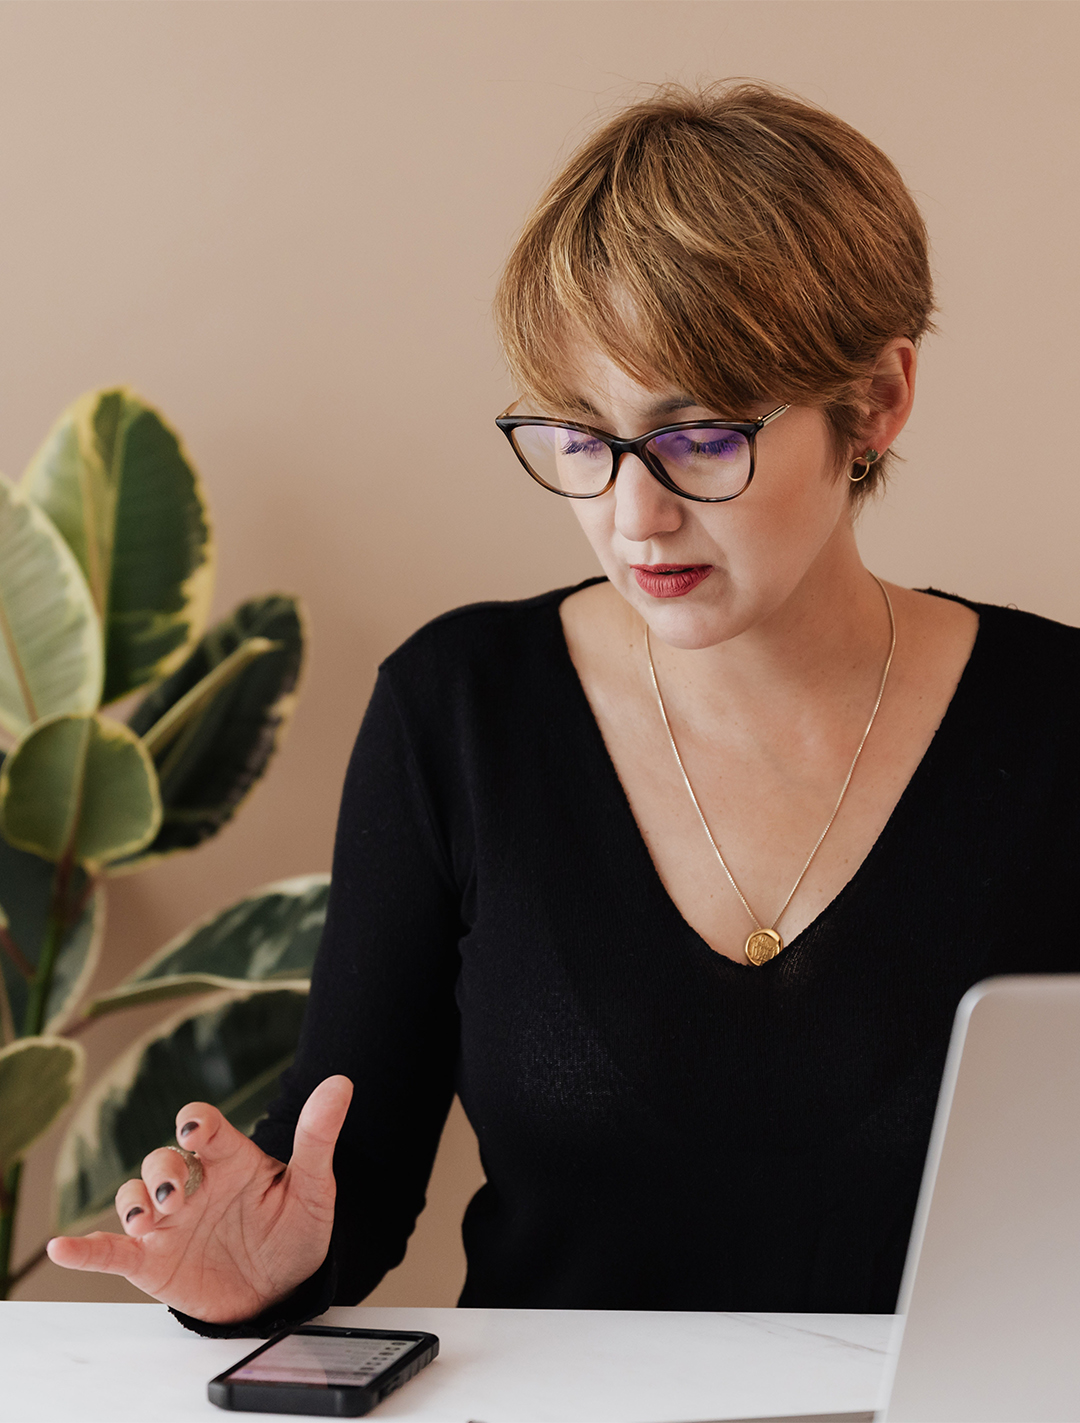 serious-woman-using-mobile-phone-while-working-in-office-4467748 copy